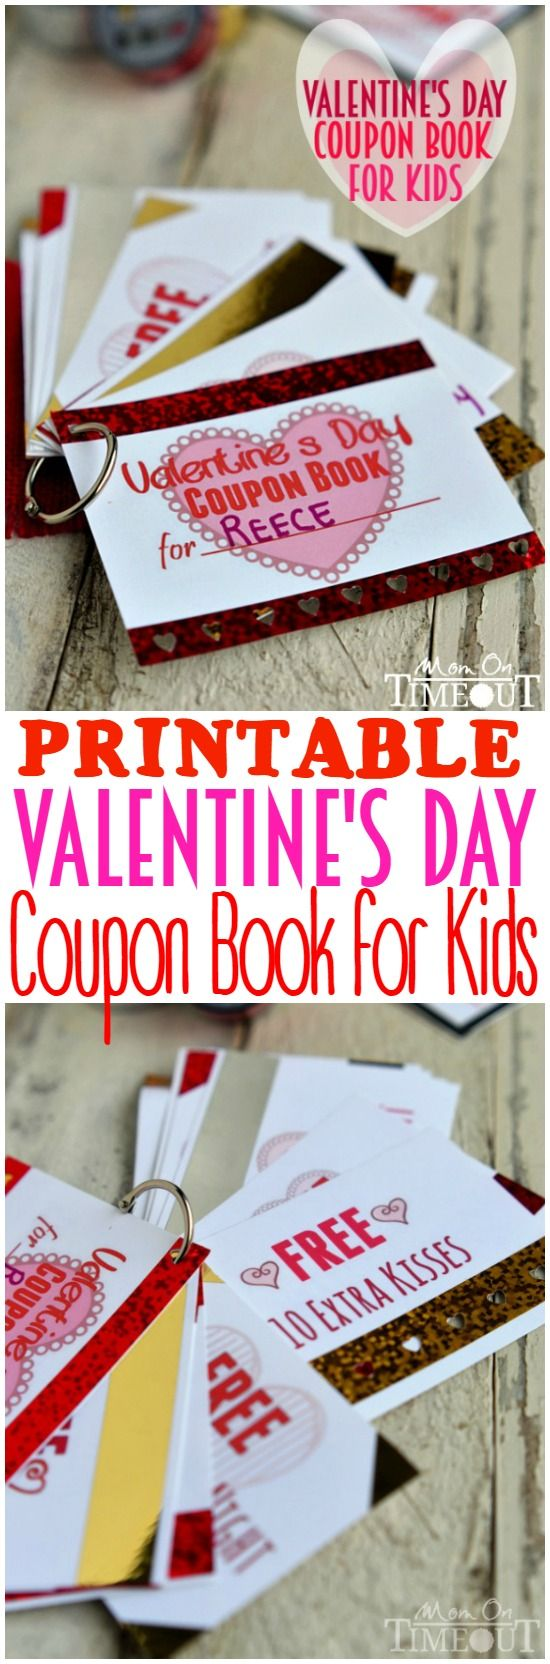 Treat your little sweetheart to a Printable Valentine's Day Coupon Book for Kids! Printable coupons for family movie night, no chores, pizza for dinner and so much more!   MomOnTimeout.com   #ValentinesDay #craft #ScotchEXP